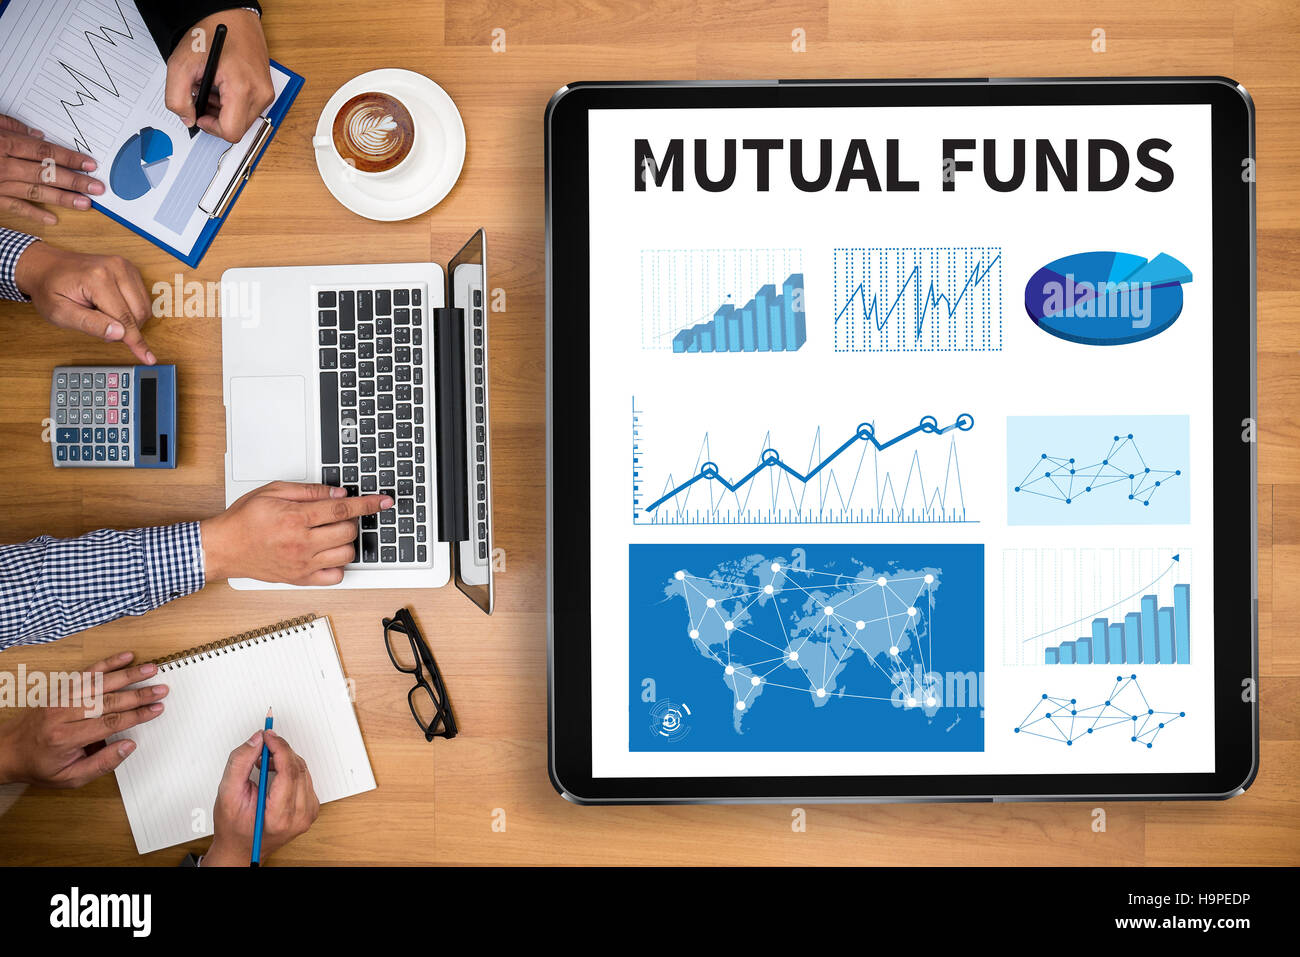 MUTUAL FUNDS - Stock Image